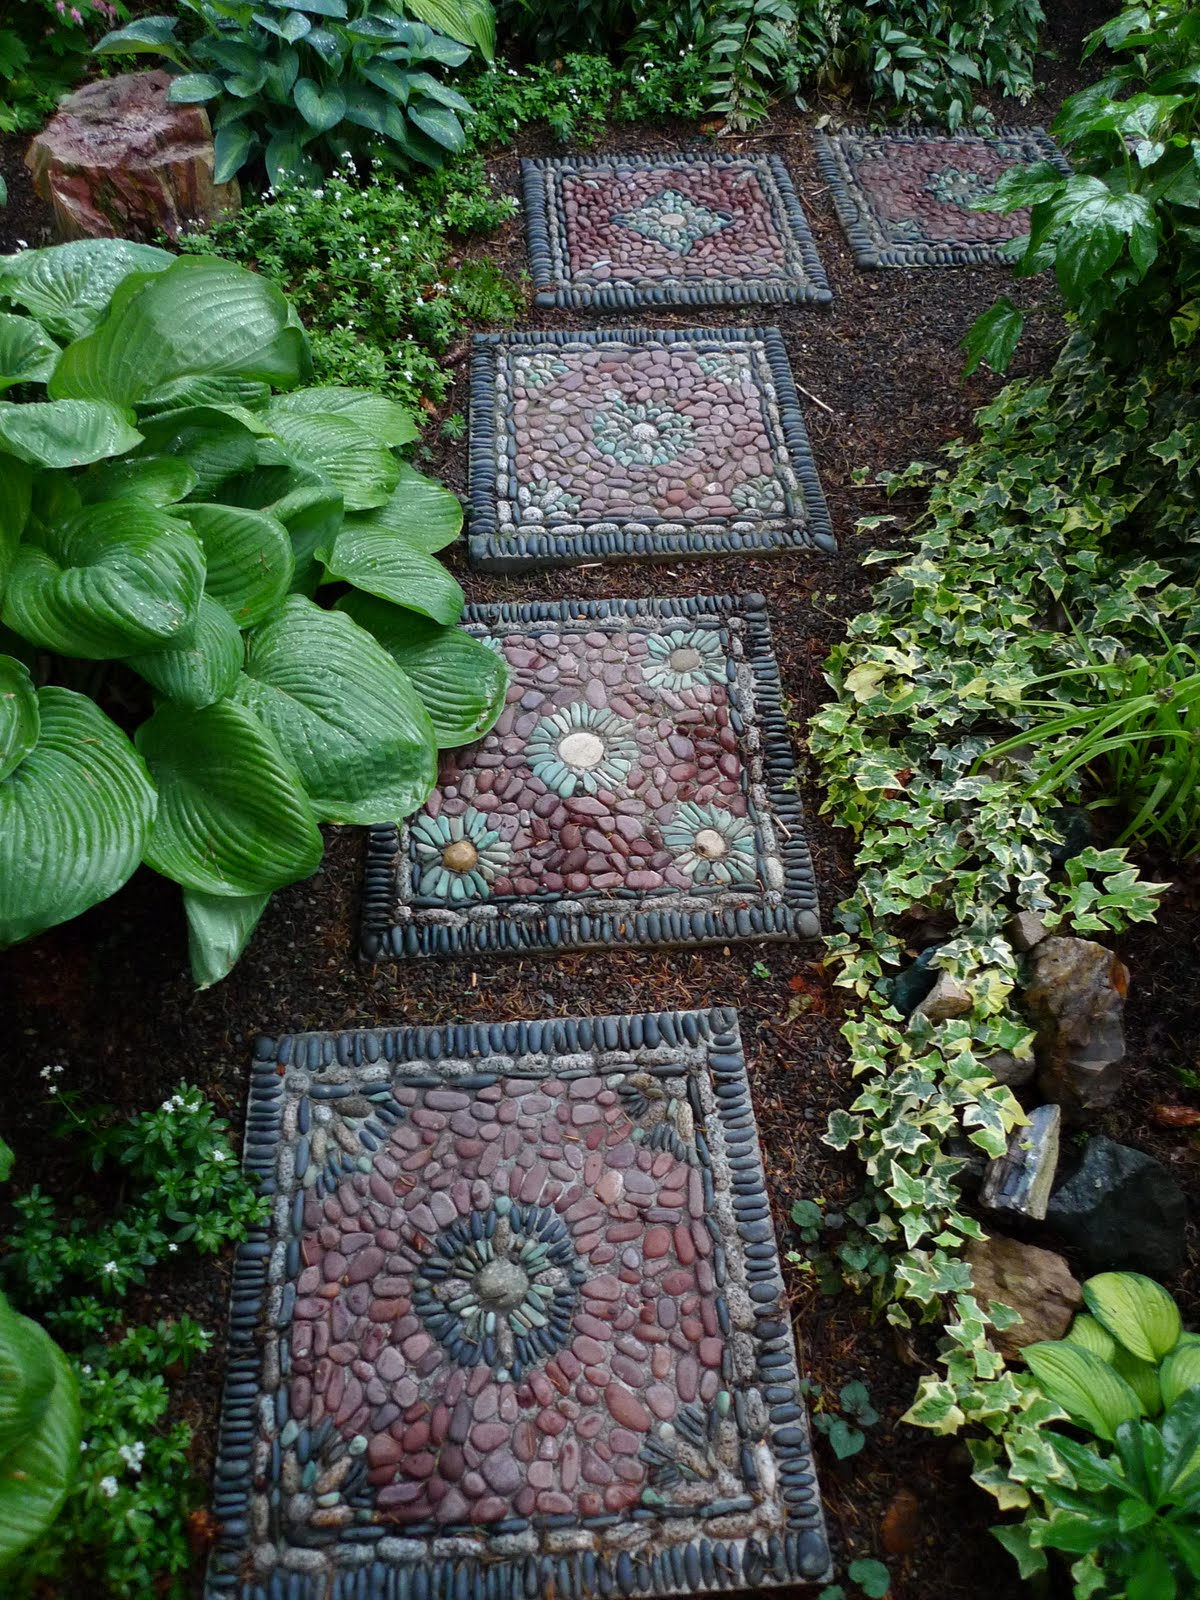 30 Beautiful DIY Stepping Stone Ideas to Decorate Garden ...